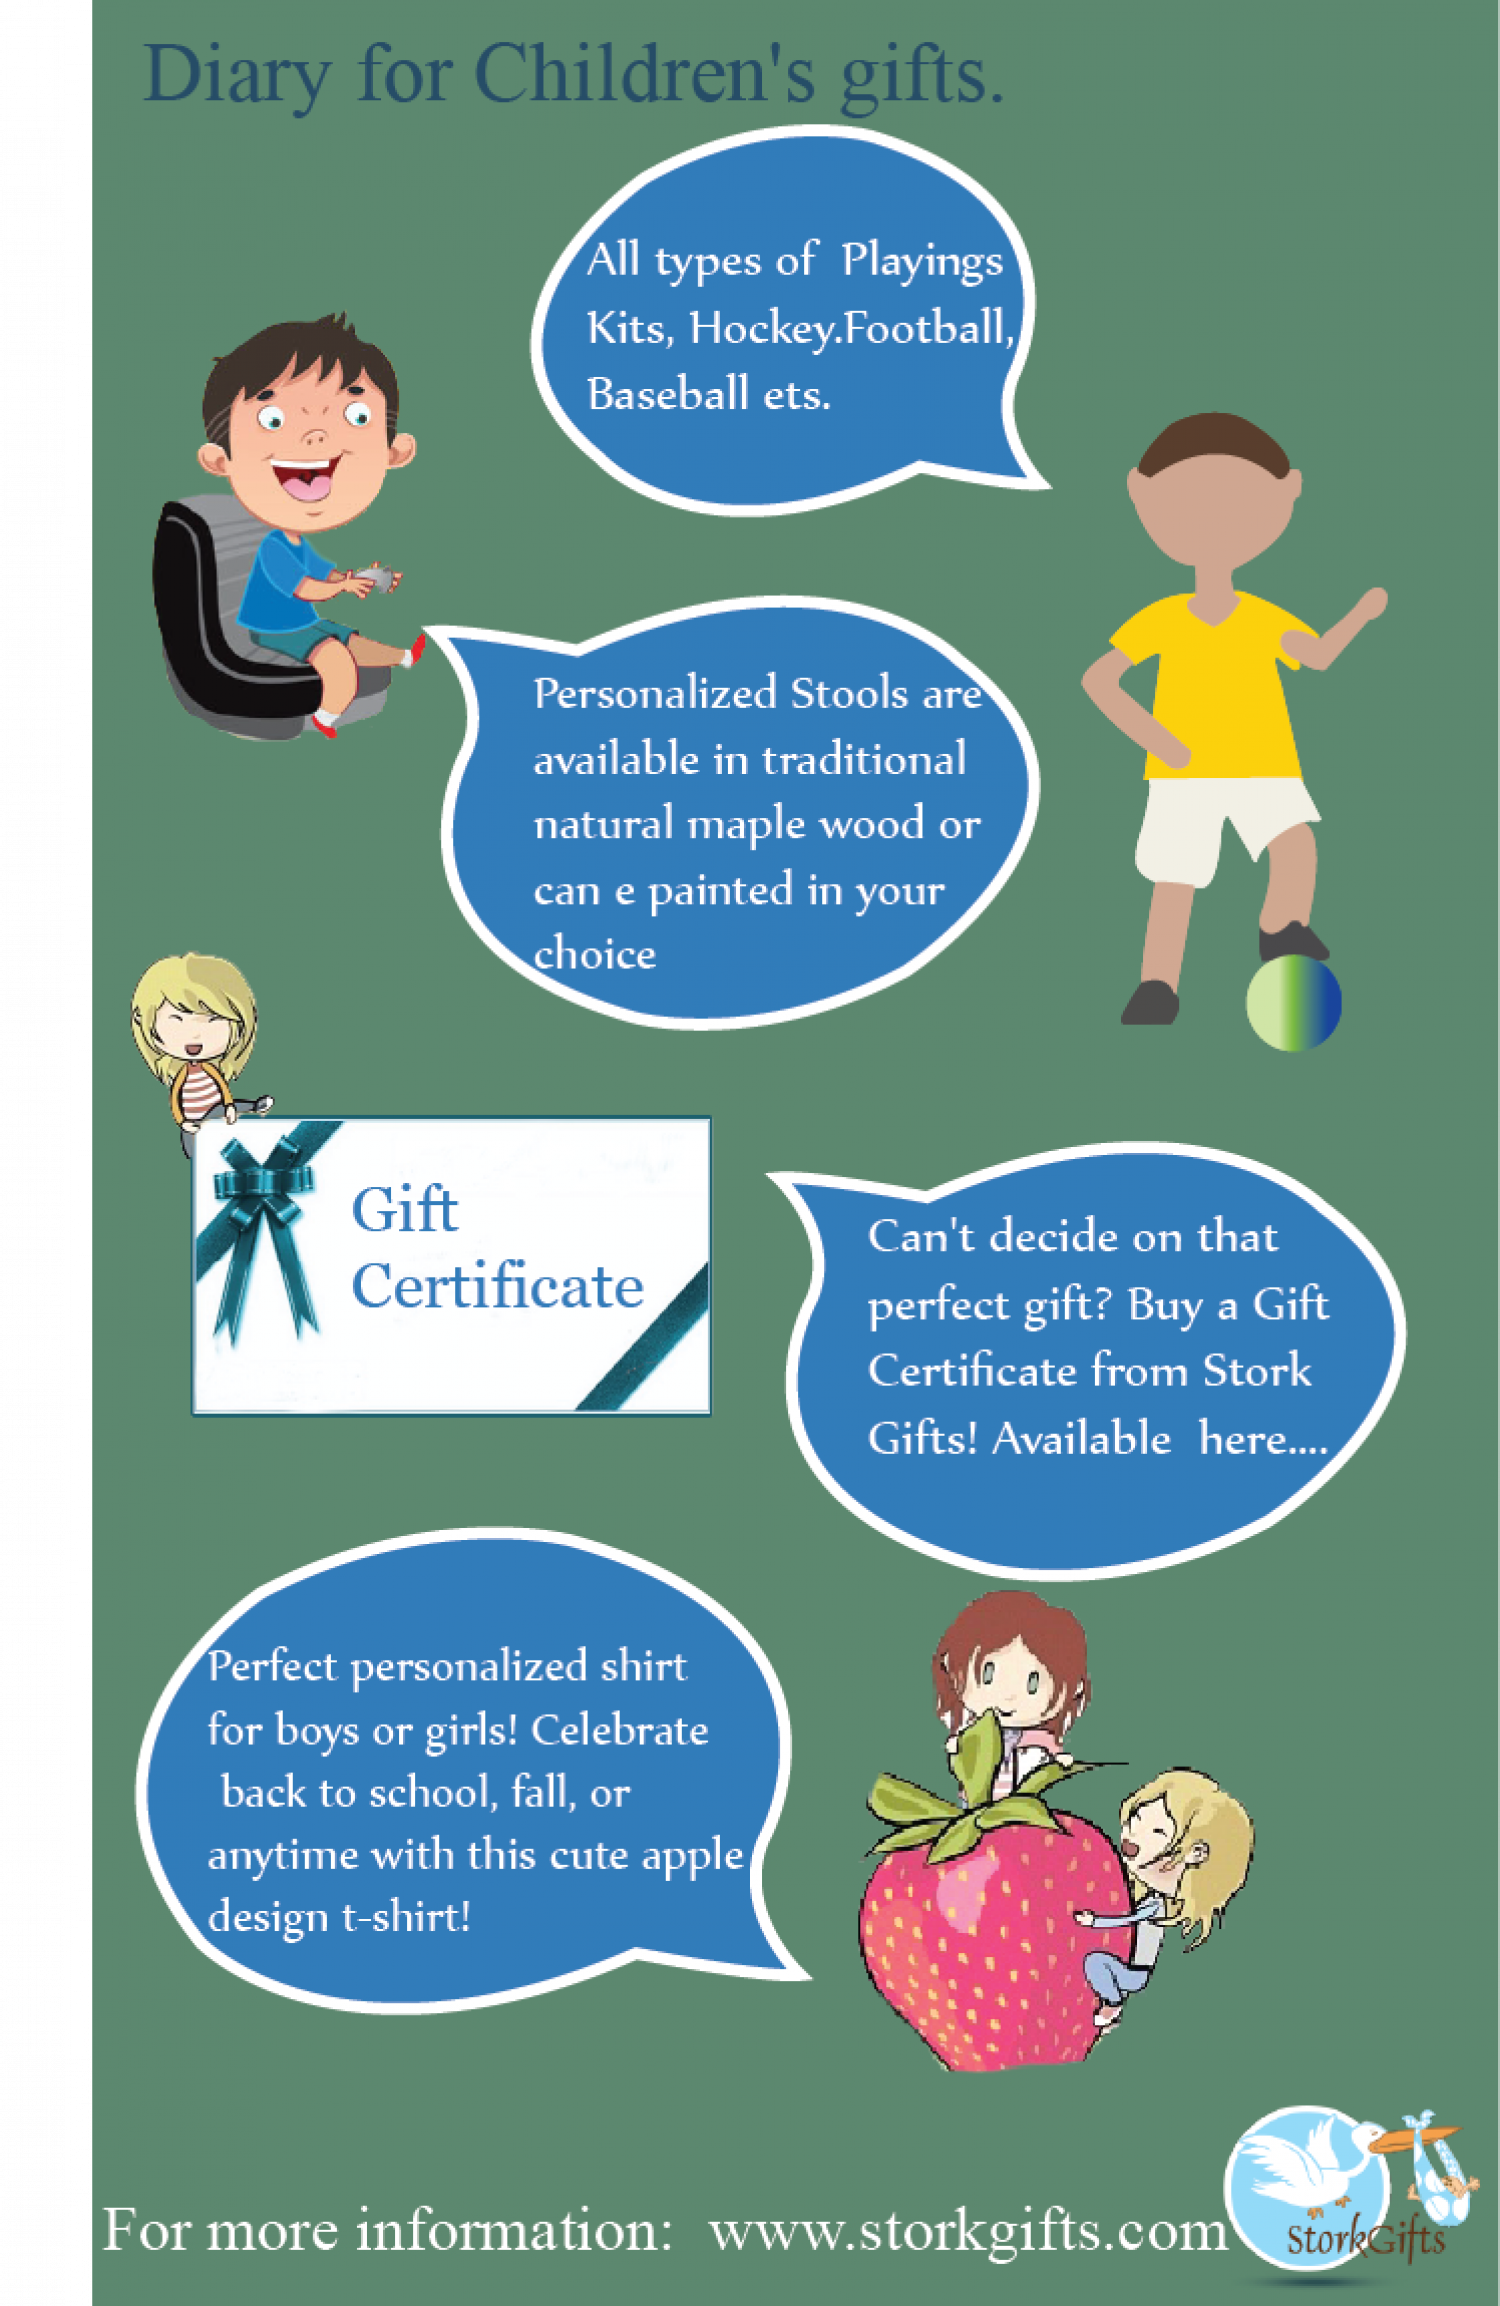 Diary for Children Gifts. Infographic